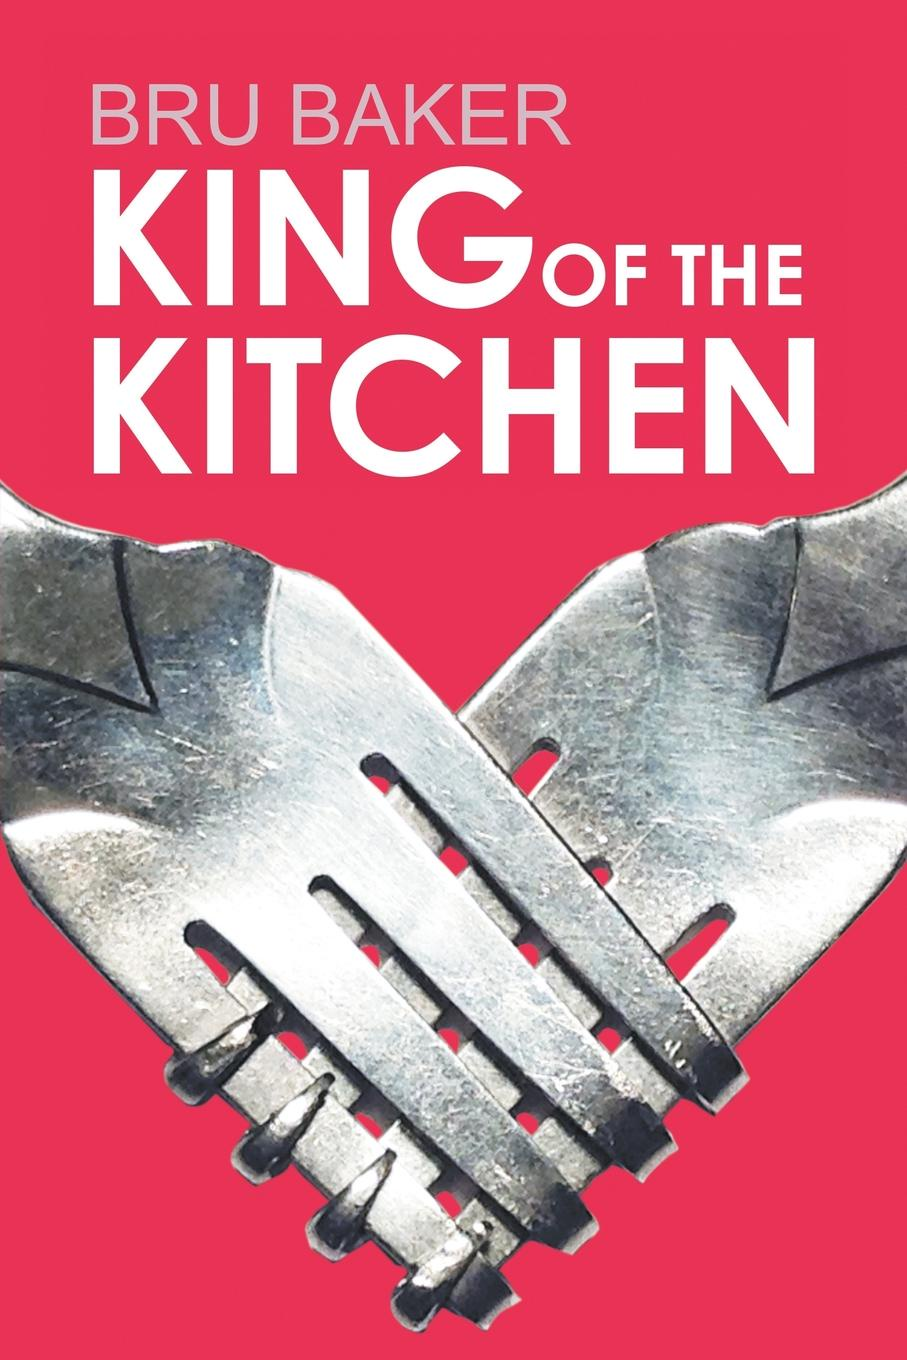 Bru Baker King of the Kitchen duncan k foley adam s fallacy